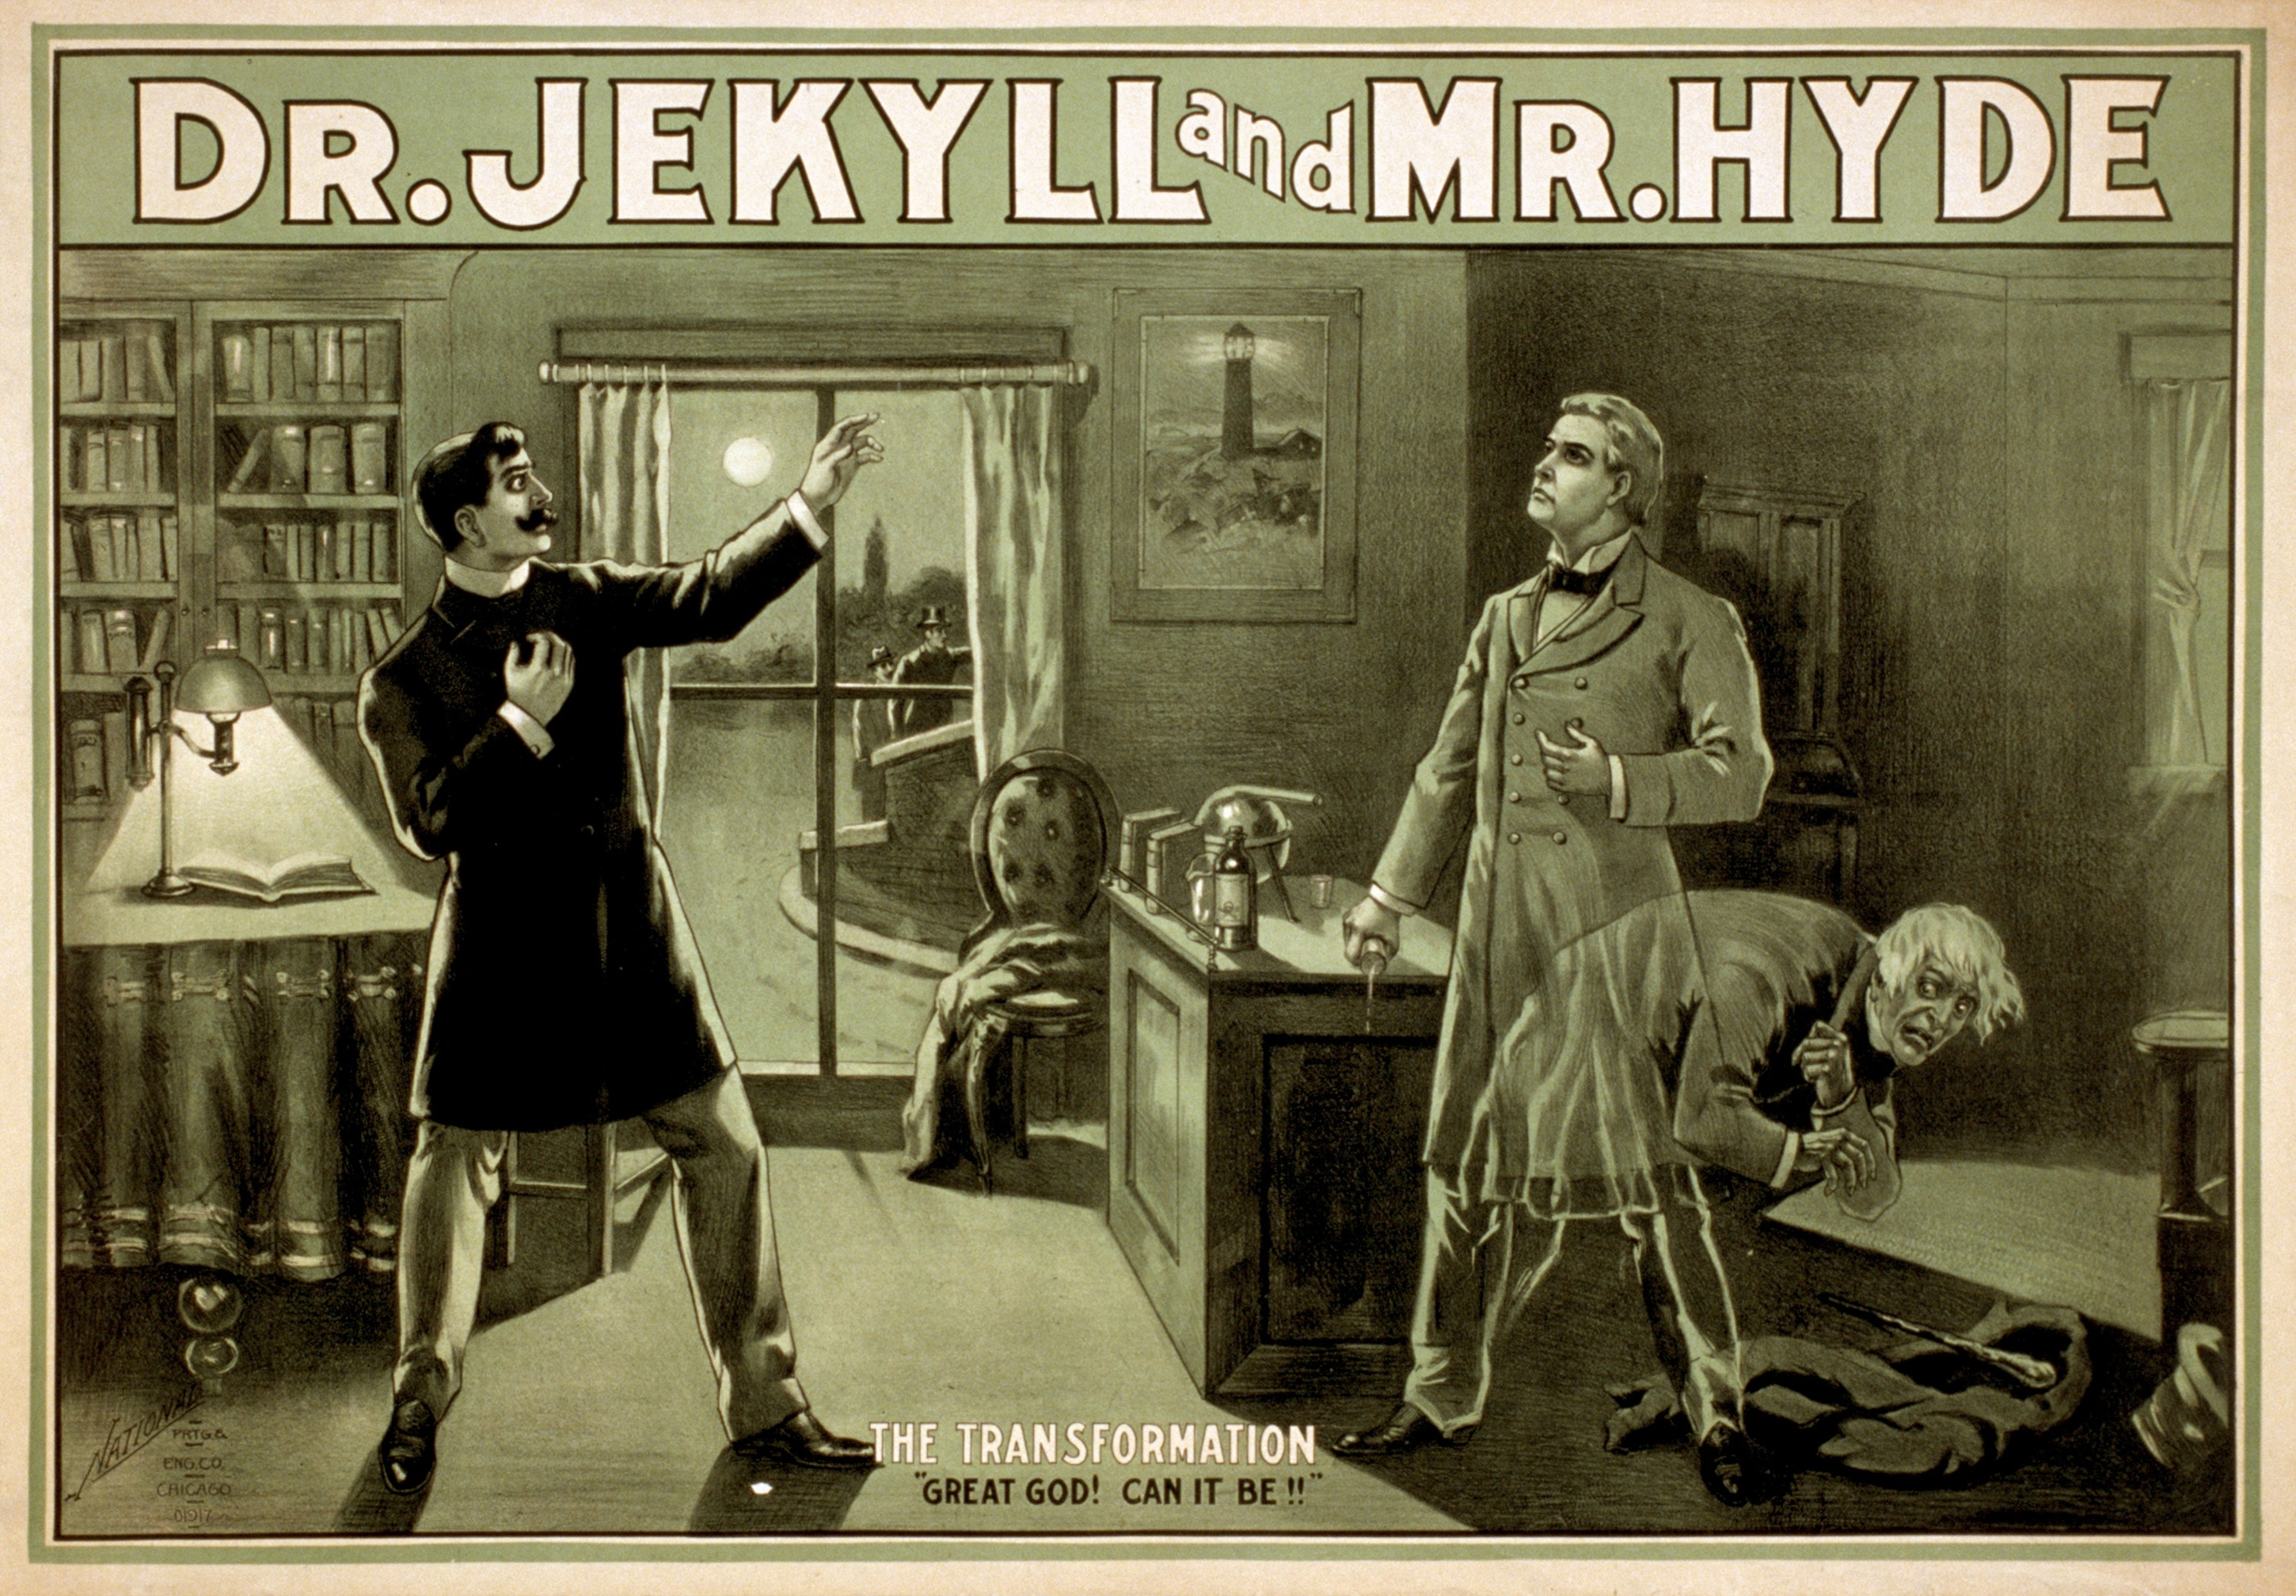 file dr jekyll and mr hyde poster edit jpg  file dr jekyll and mr hyde poster edit2 jpg